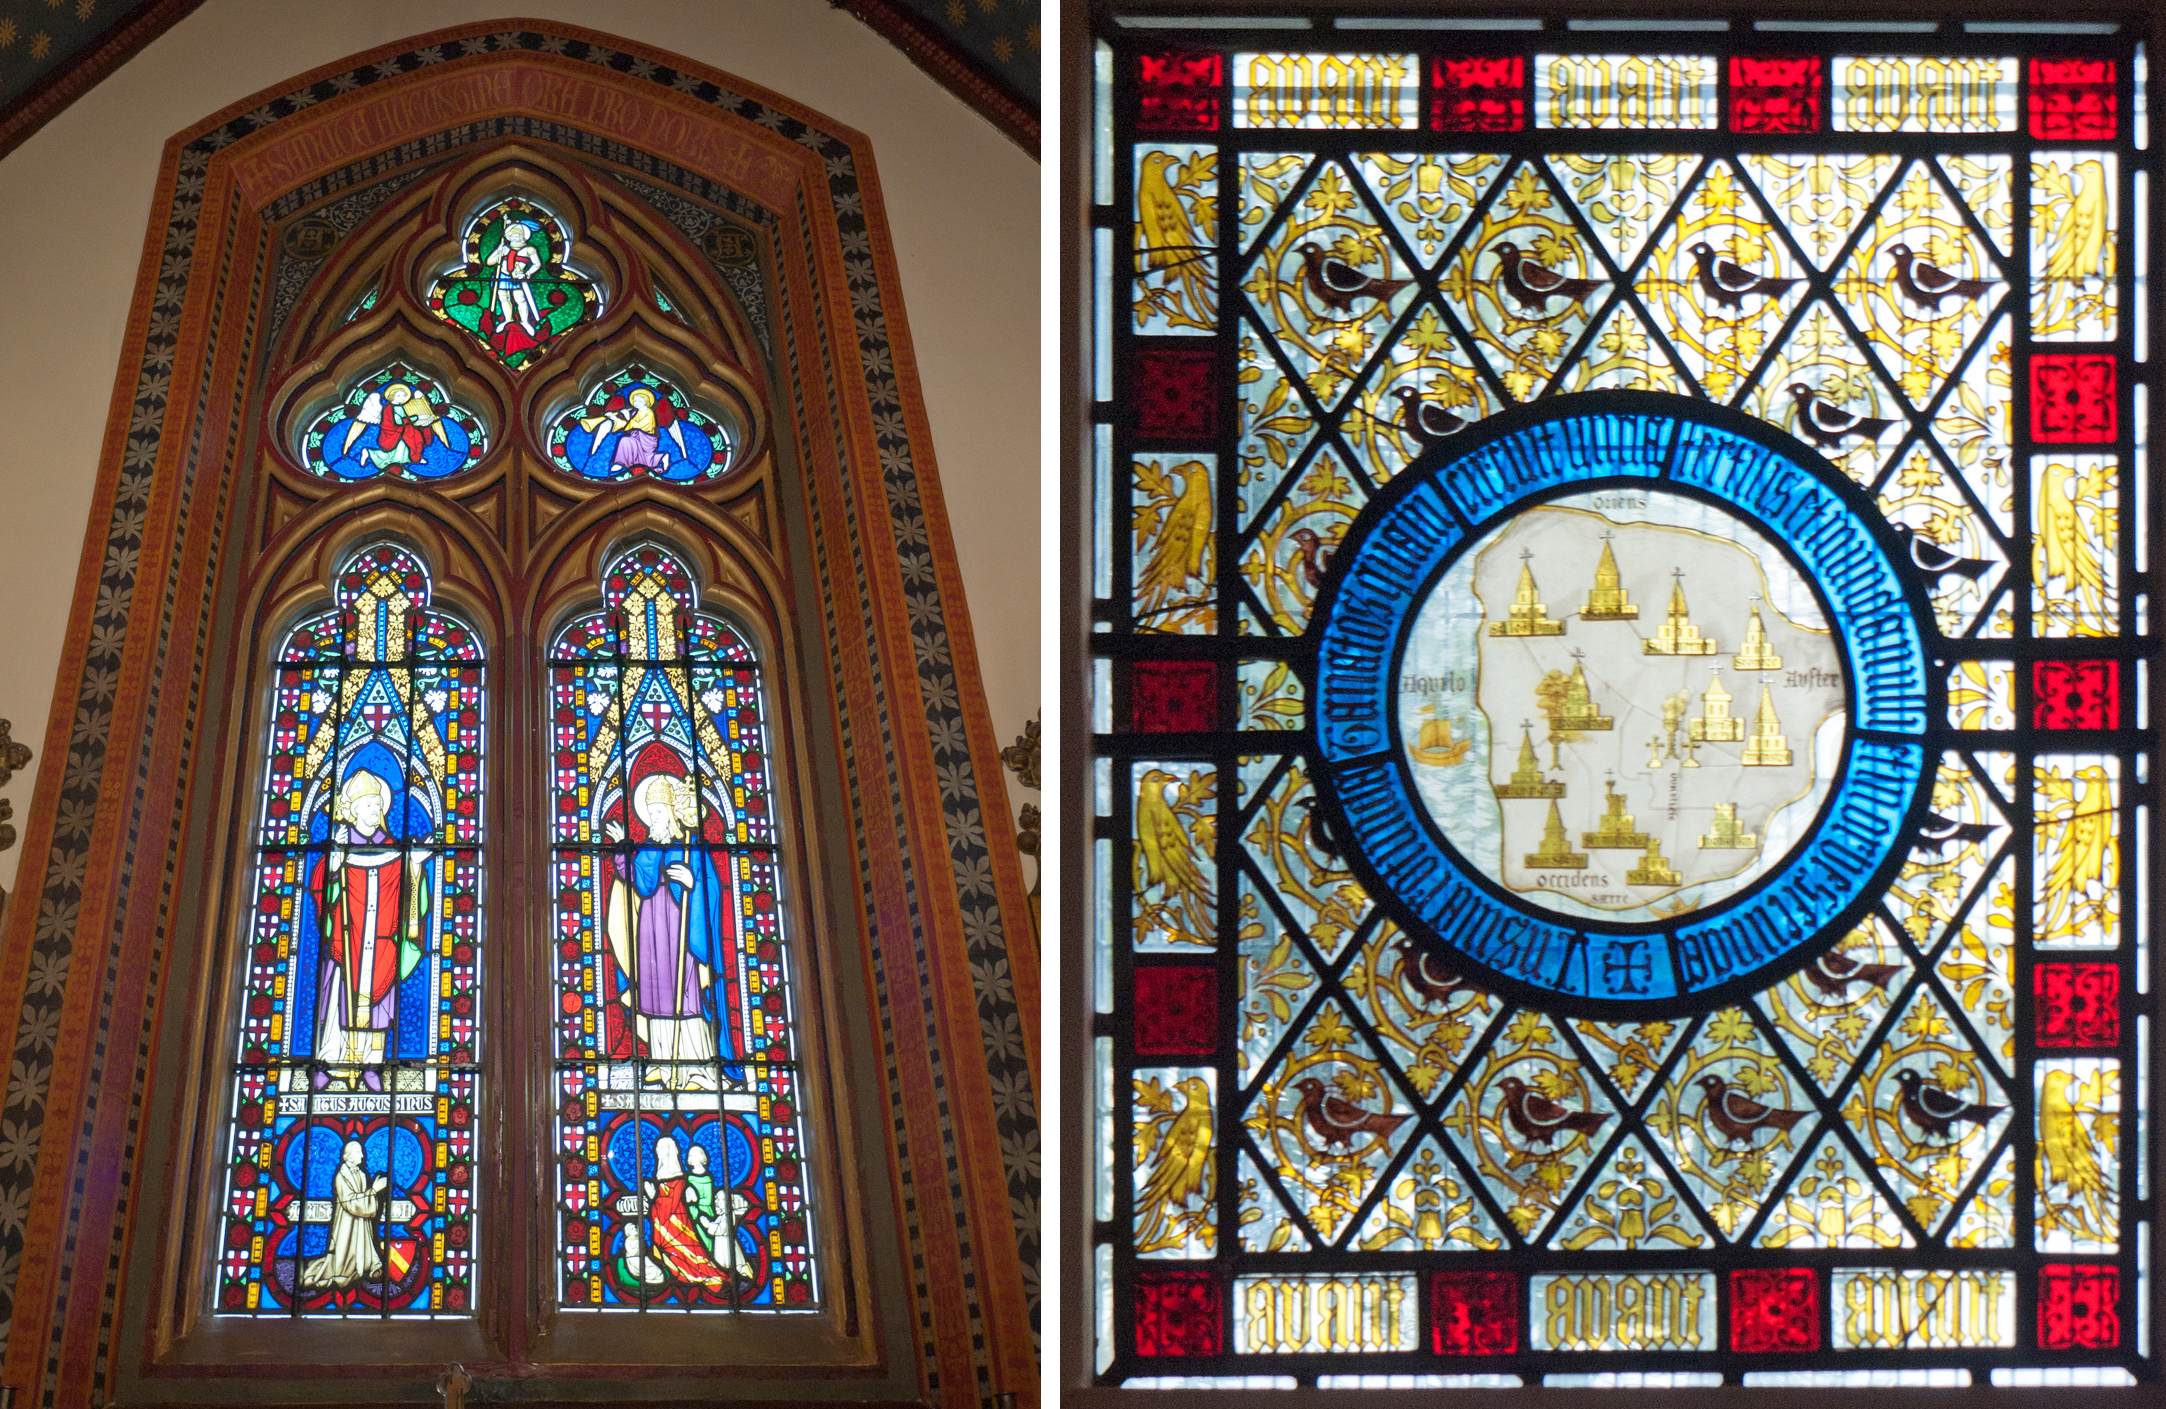 Chapel window with Pugin portraits & coloured border: sitting room window